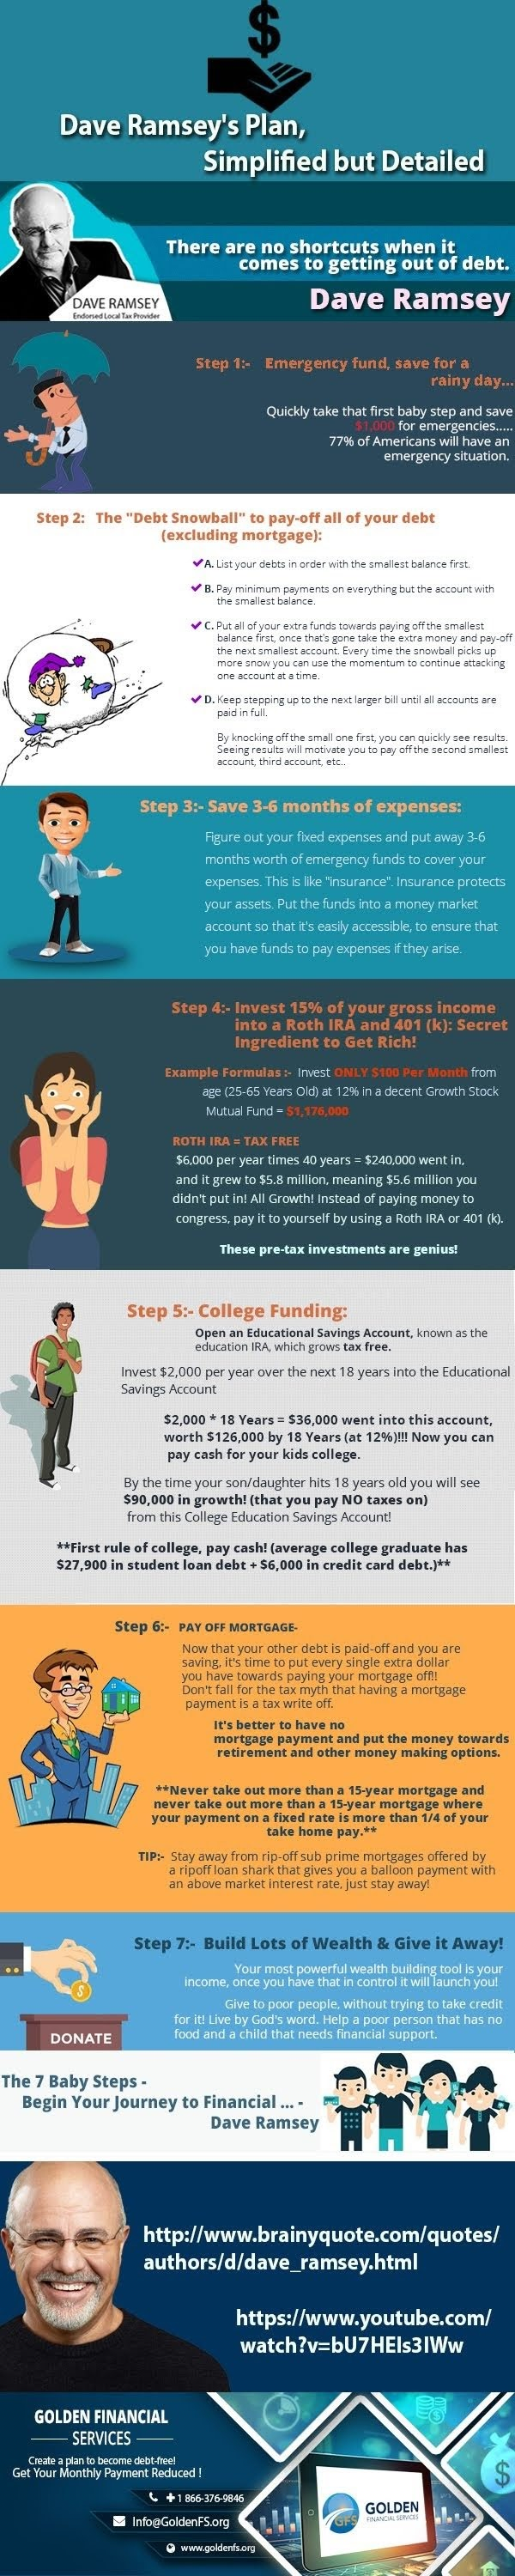 Dave Ramsey's 7 Baby Steps #infographic